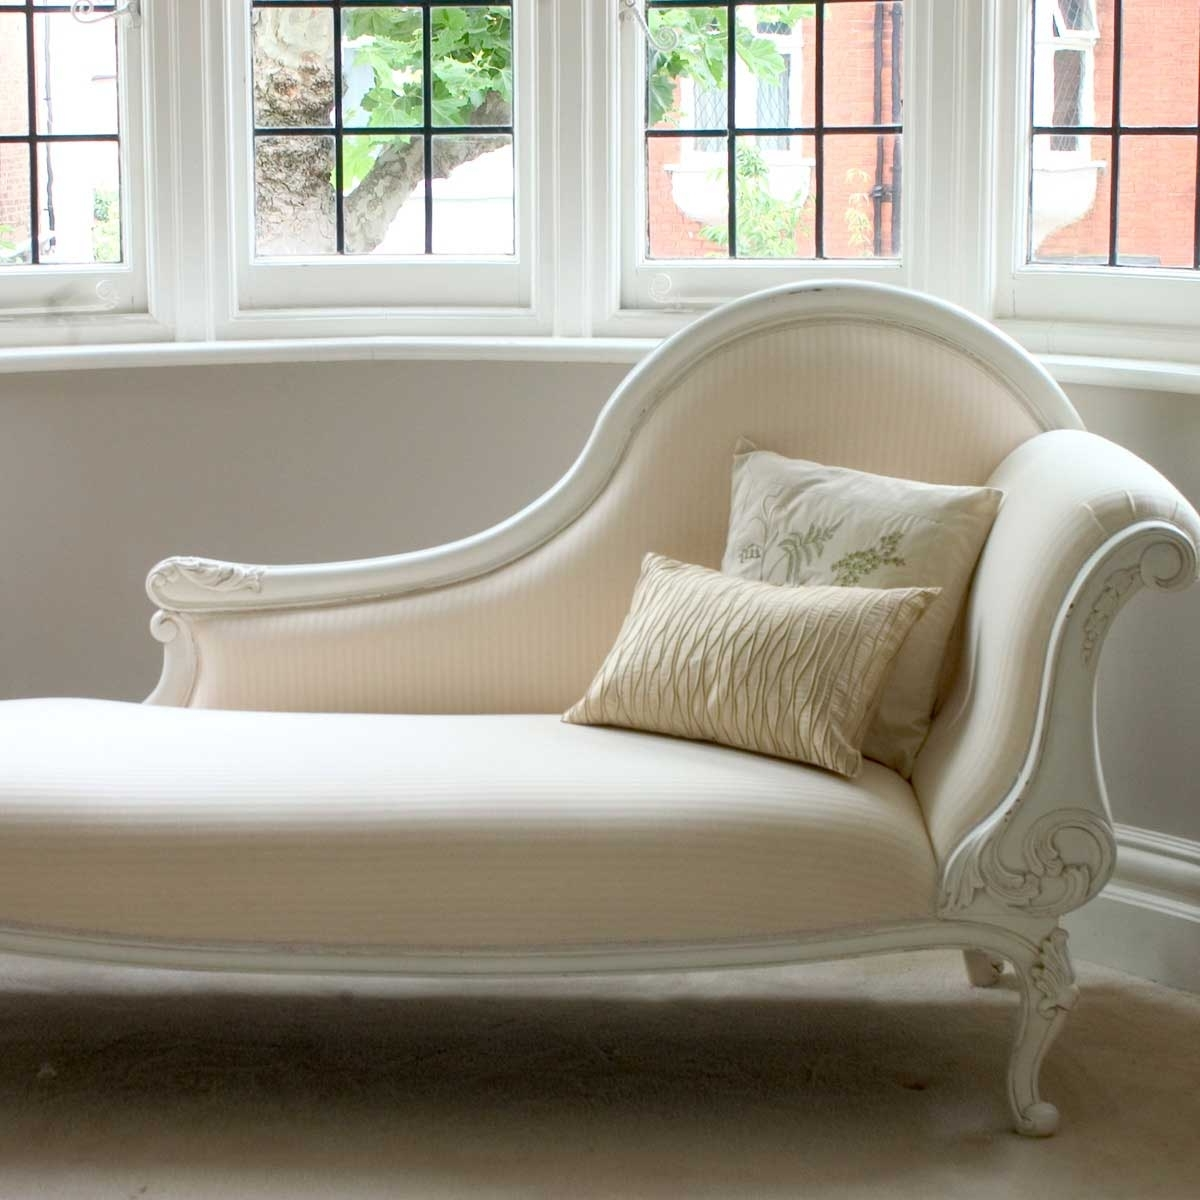 Most Recent Cheap Chaise Lounge Chairs Within Sofa : Cool Chaise Lounges For Bedrooms Bedroom Lounge Slipcovers (View 11 of 15)